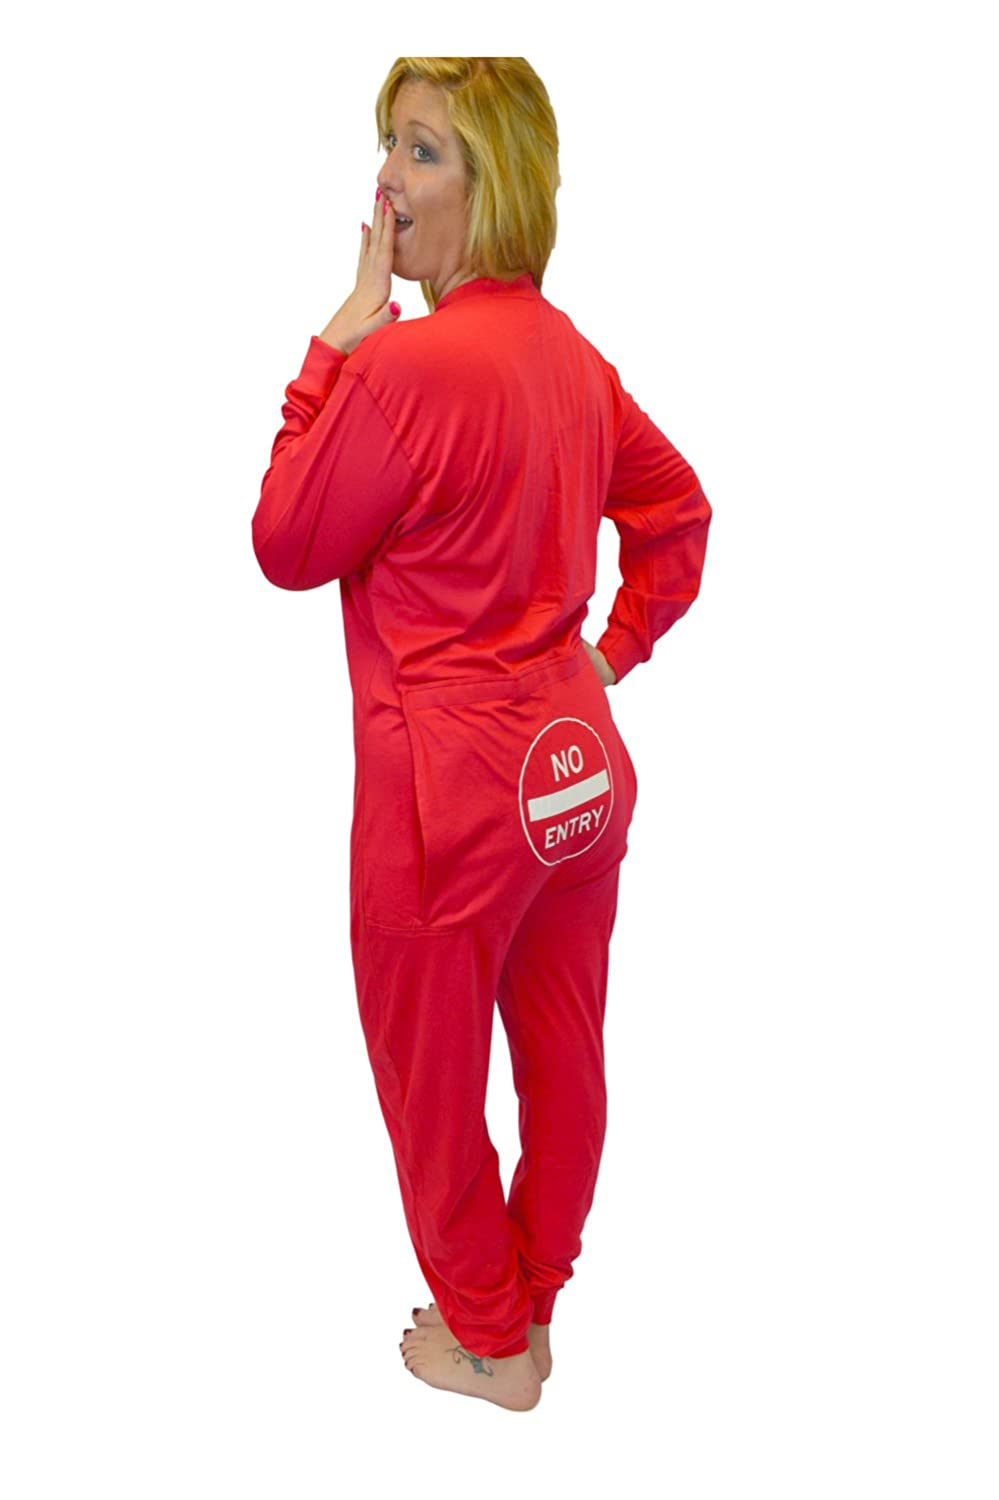 Red Union Suit Onesie Pajamas with Funny Butt Flap NO Entry for Men   Women  at Amazon Men s Clothing store  865a15dab